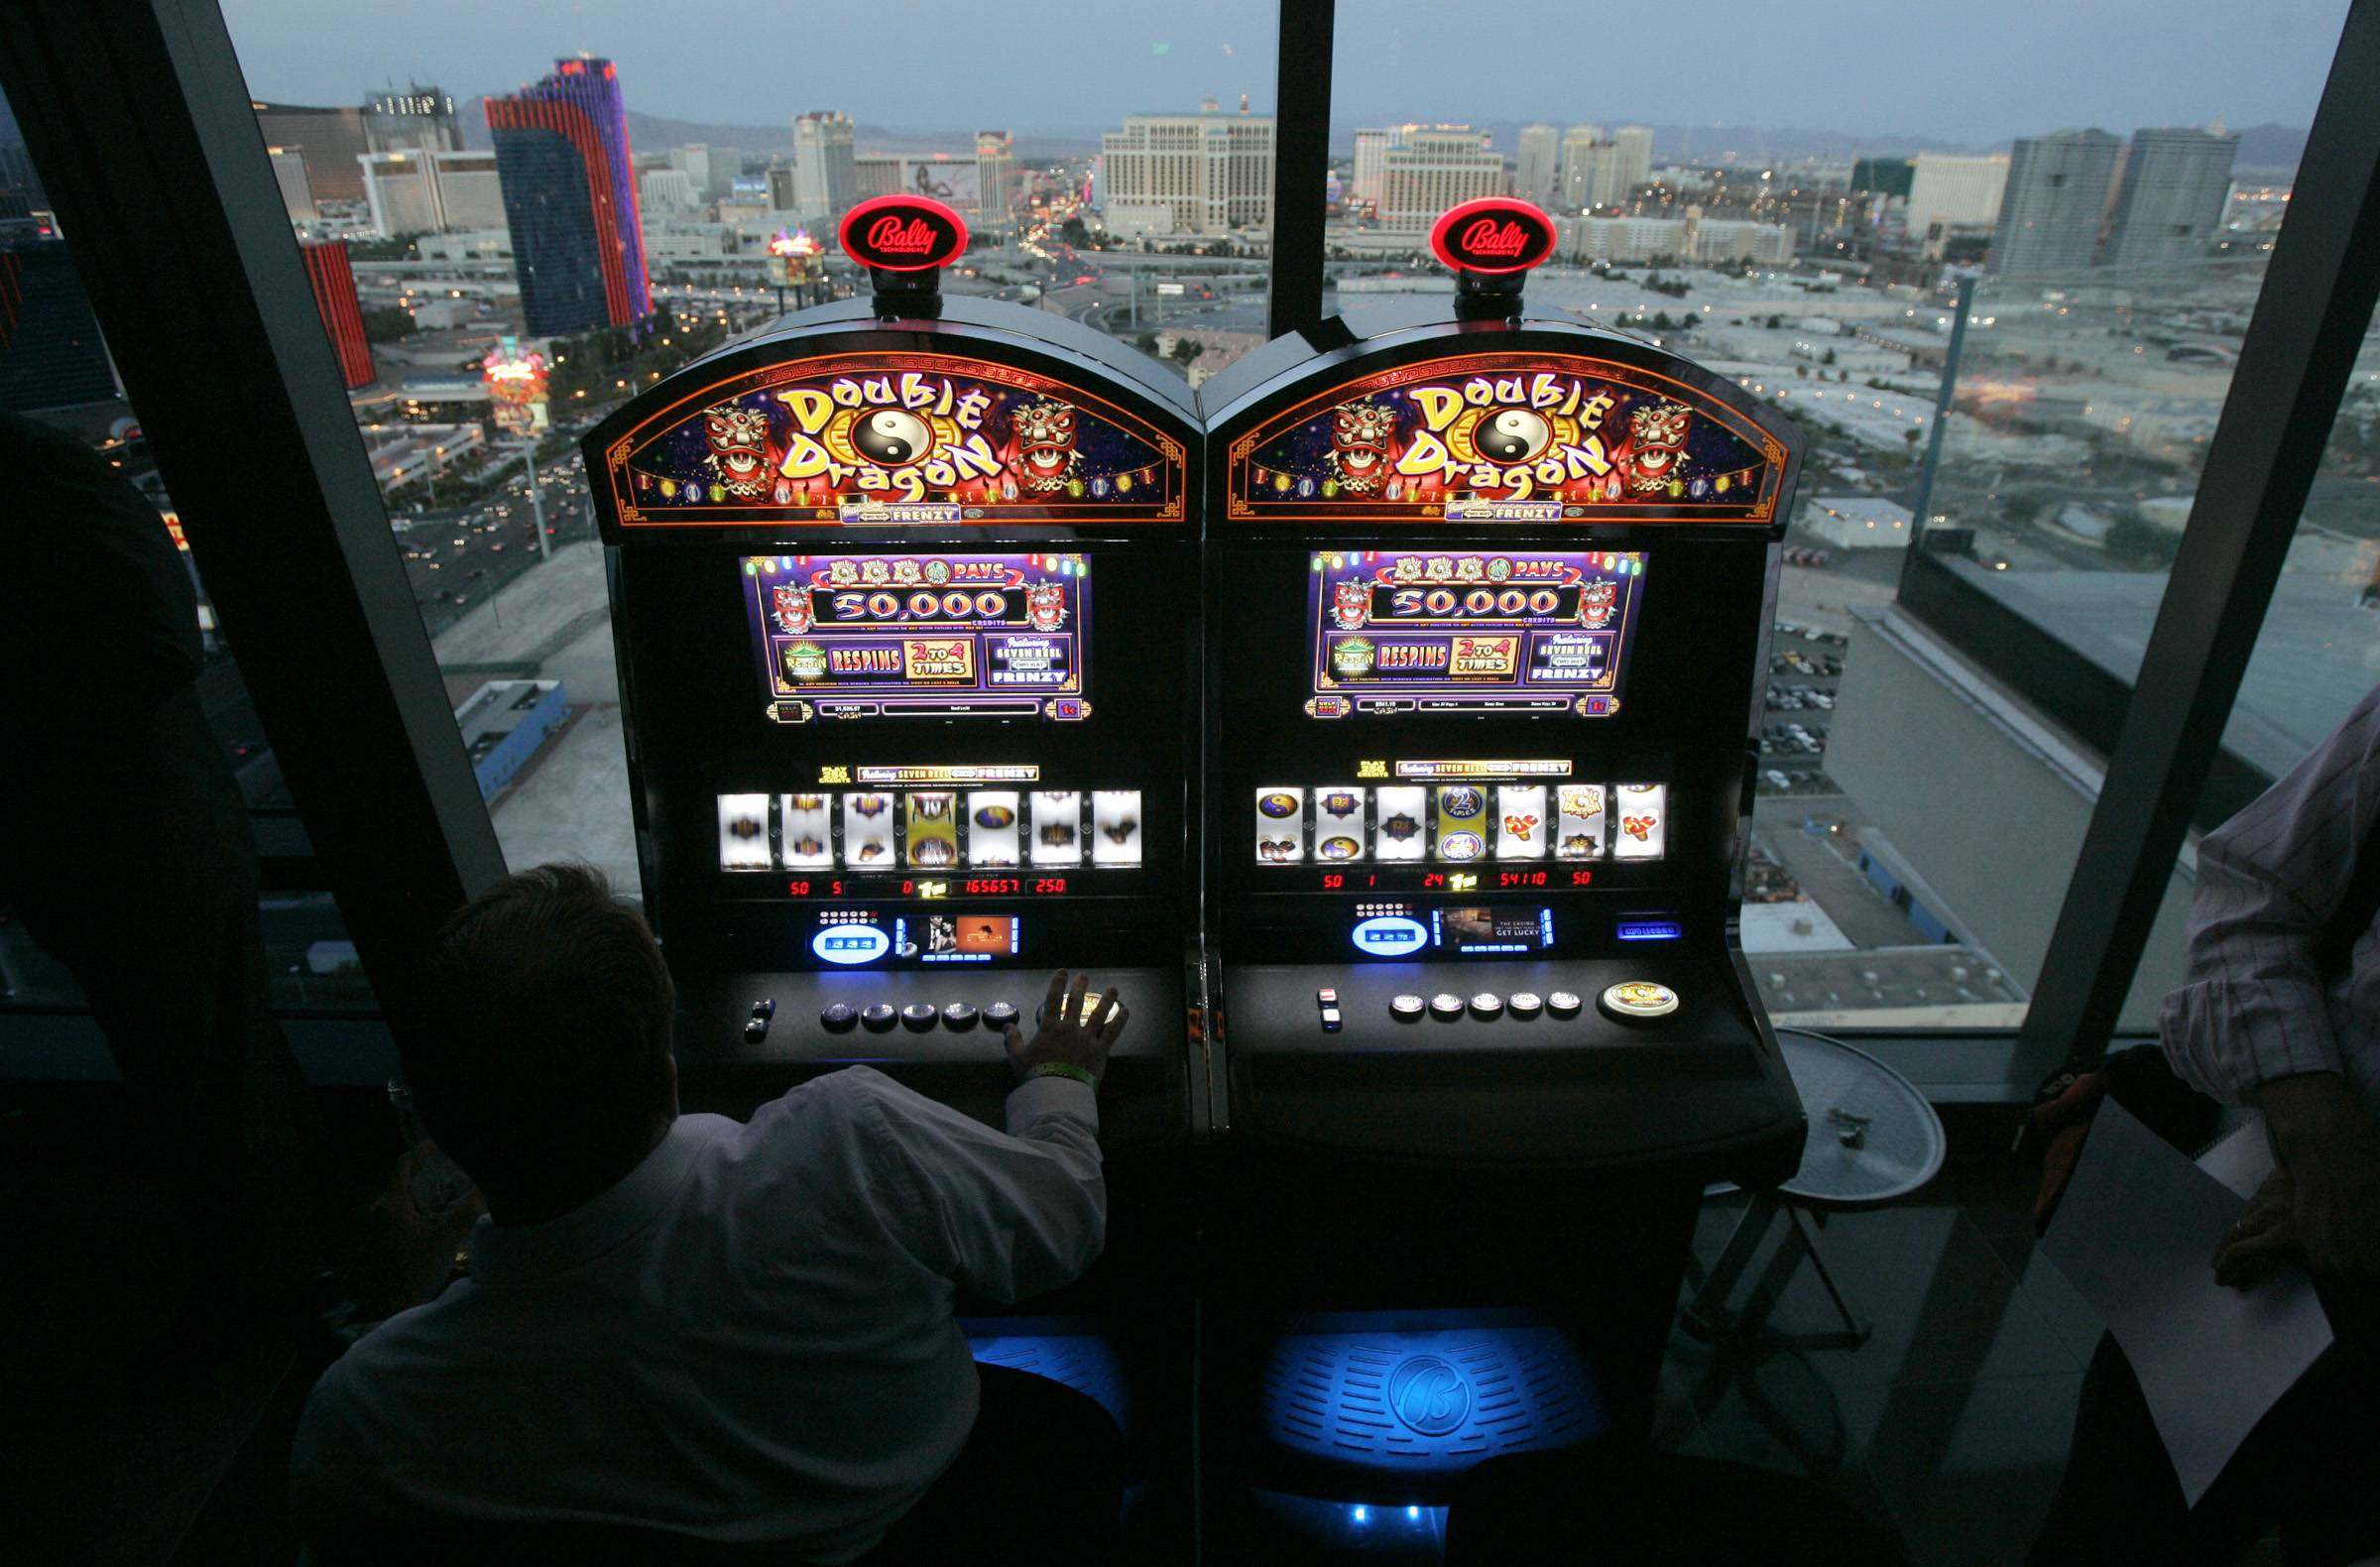 Scientific Games on Friday, Aug. 1, 2014 said it will pay about $3.3 billion to buy slot machine maker Bally Technologies in a cash deal that expands its casino management system portfolio.